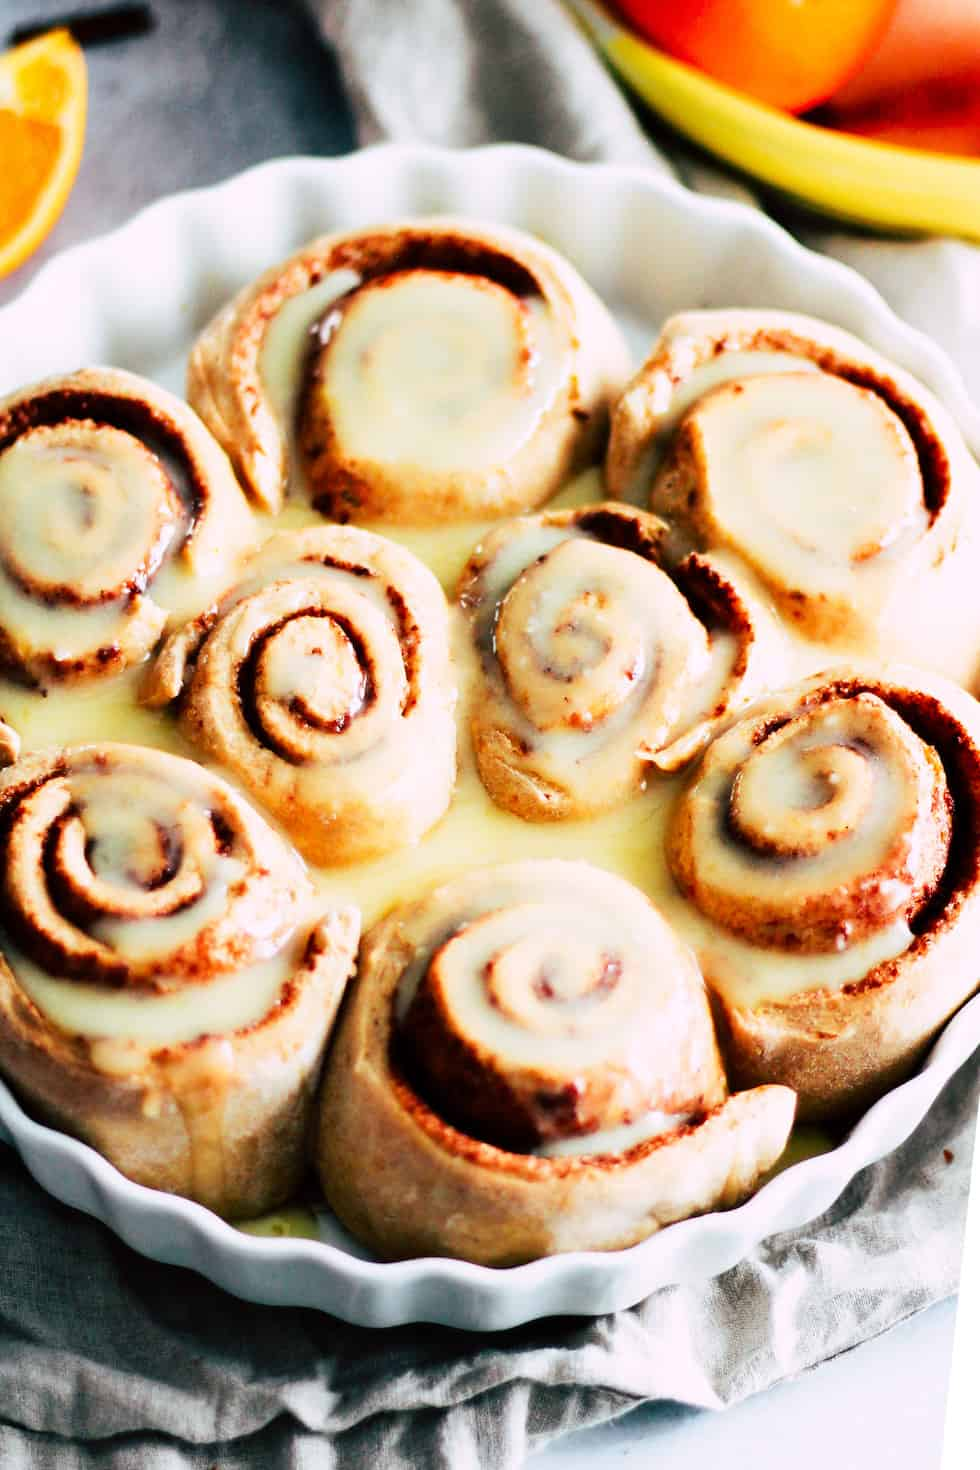 Cinnamon rolls in a round, white baking dish with oranges in the background.